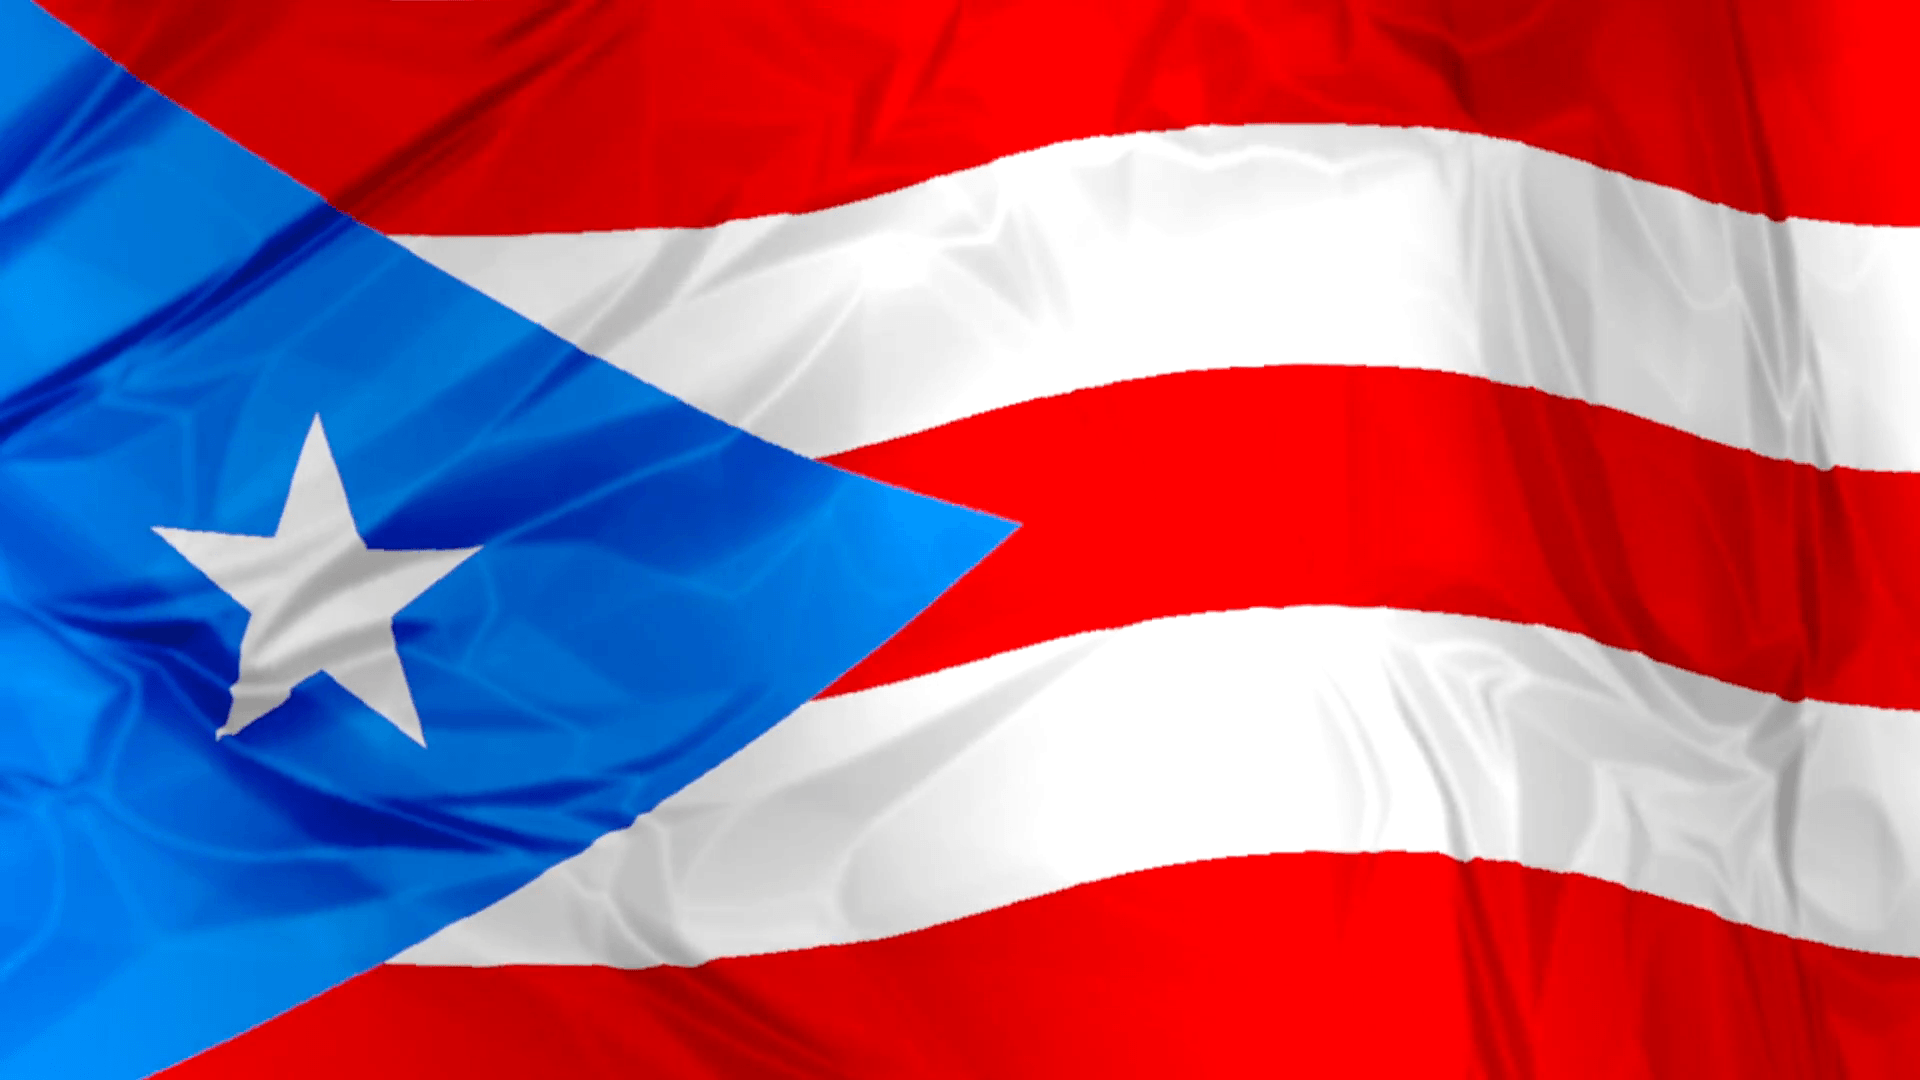 3D waving Puerto Rico flag backgrounds red, blue and white colors